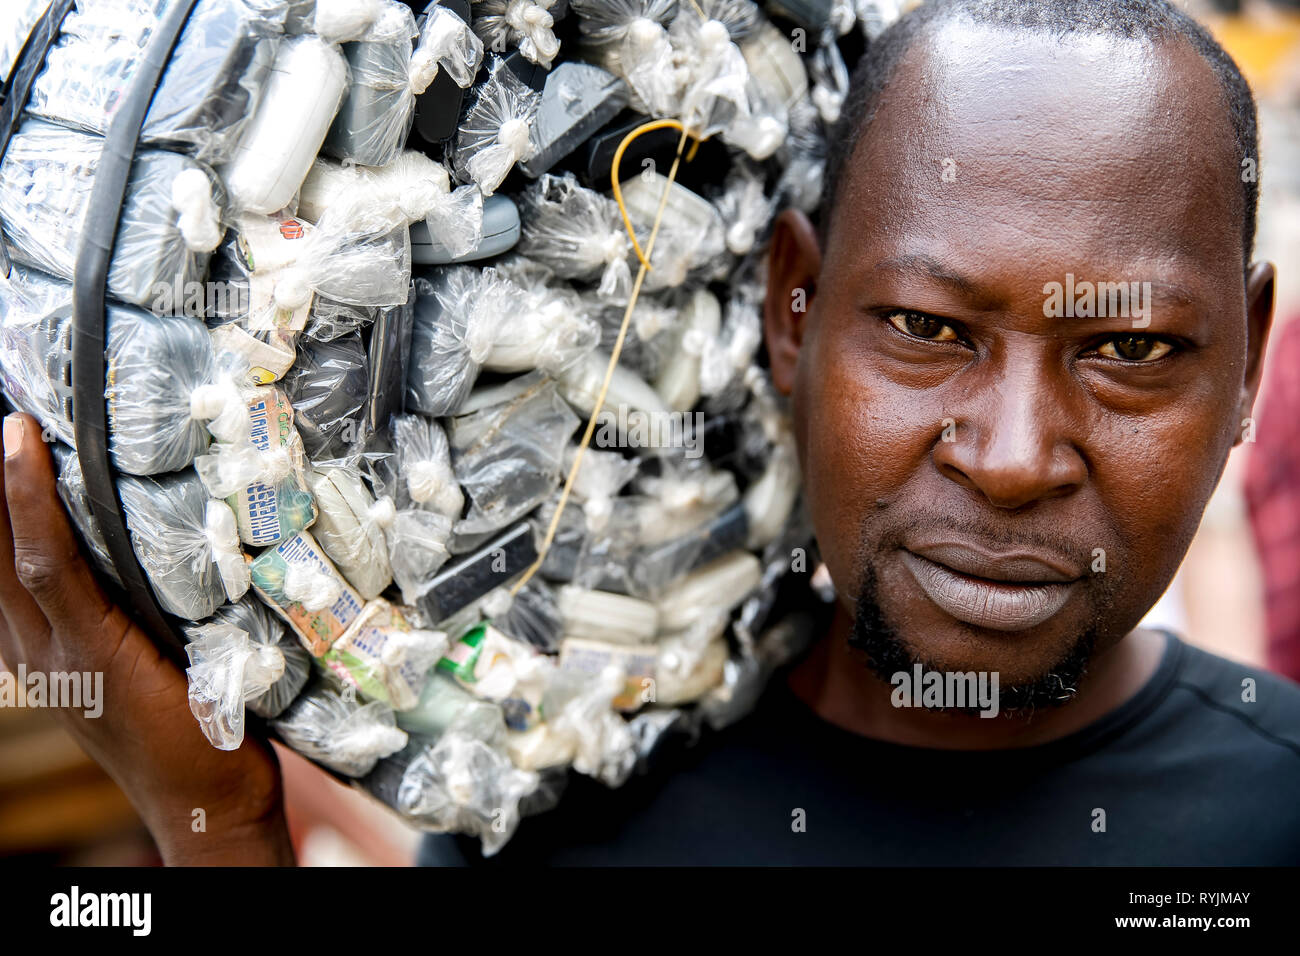 Man carrying cell phones in Abidjan, Ivory Coast. - Stock Image